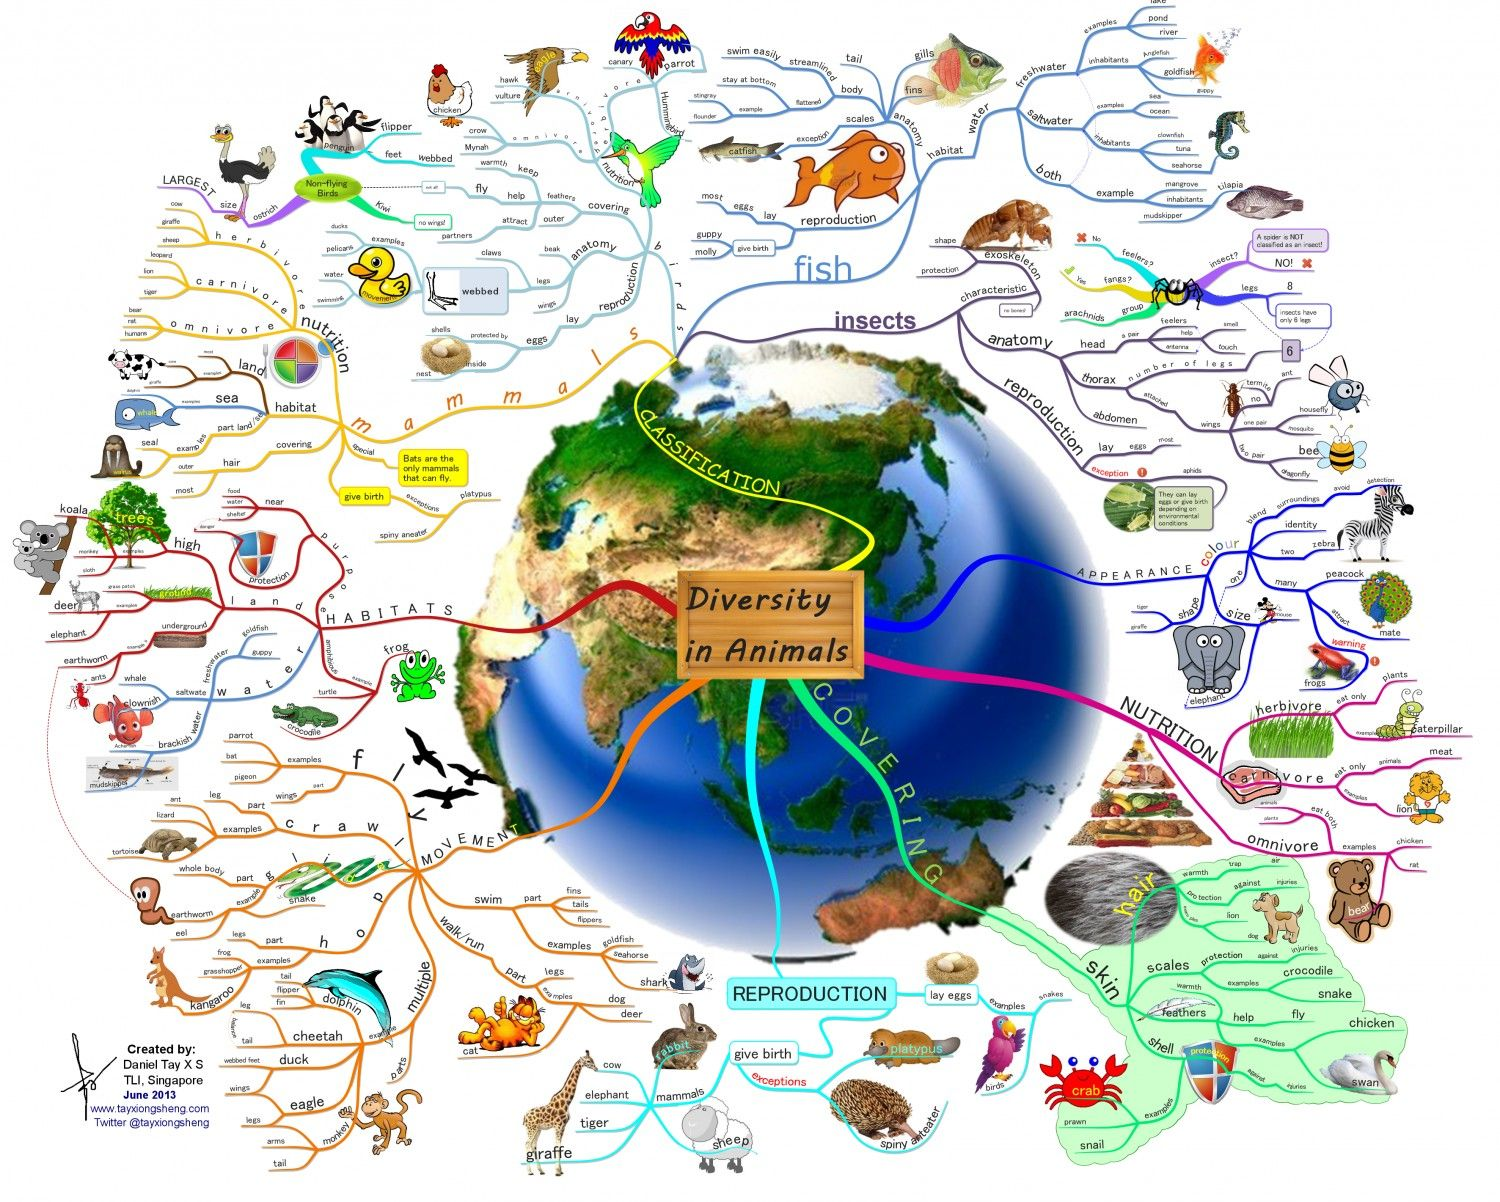 Diversity in Animals Infographic Mapas mentales y